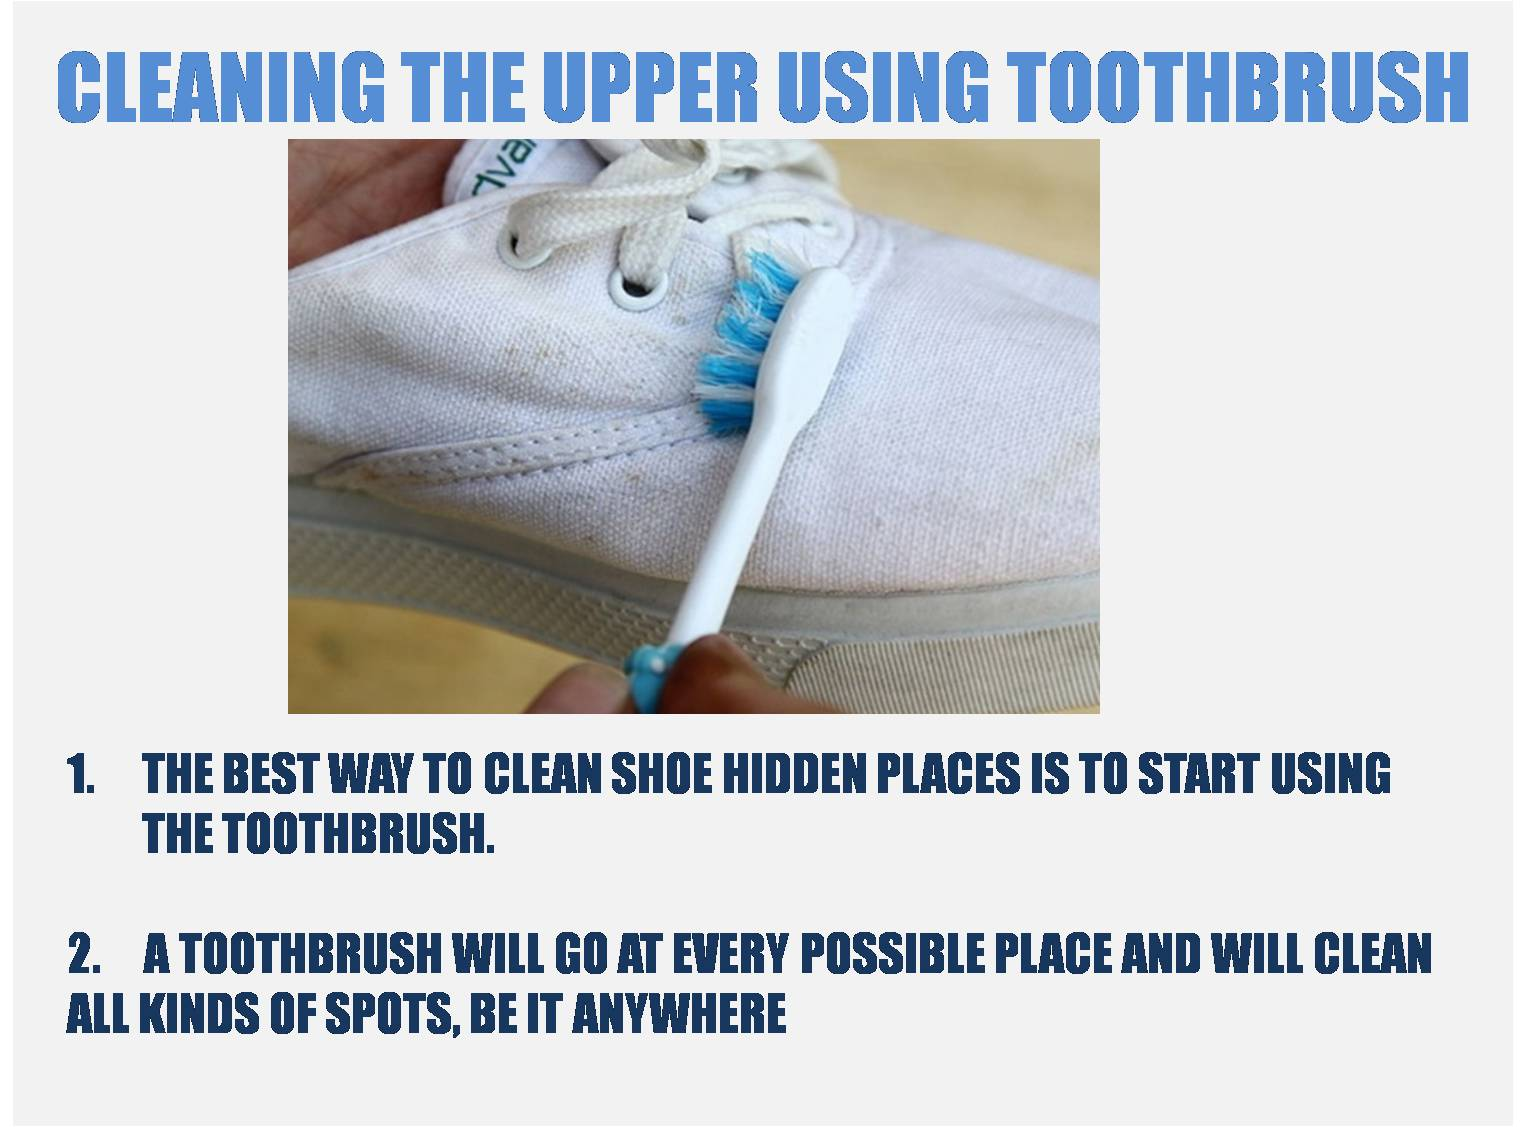 Badminton_Shoe_Cleaning_Technique_with_Toothbrush_khelmart_Guide.jpg